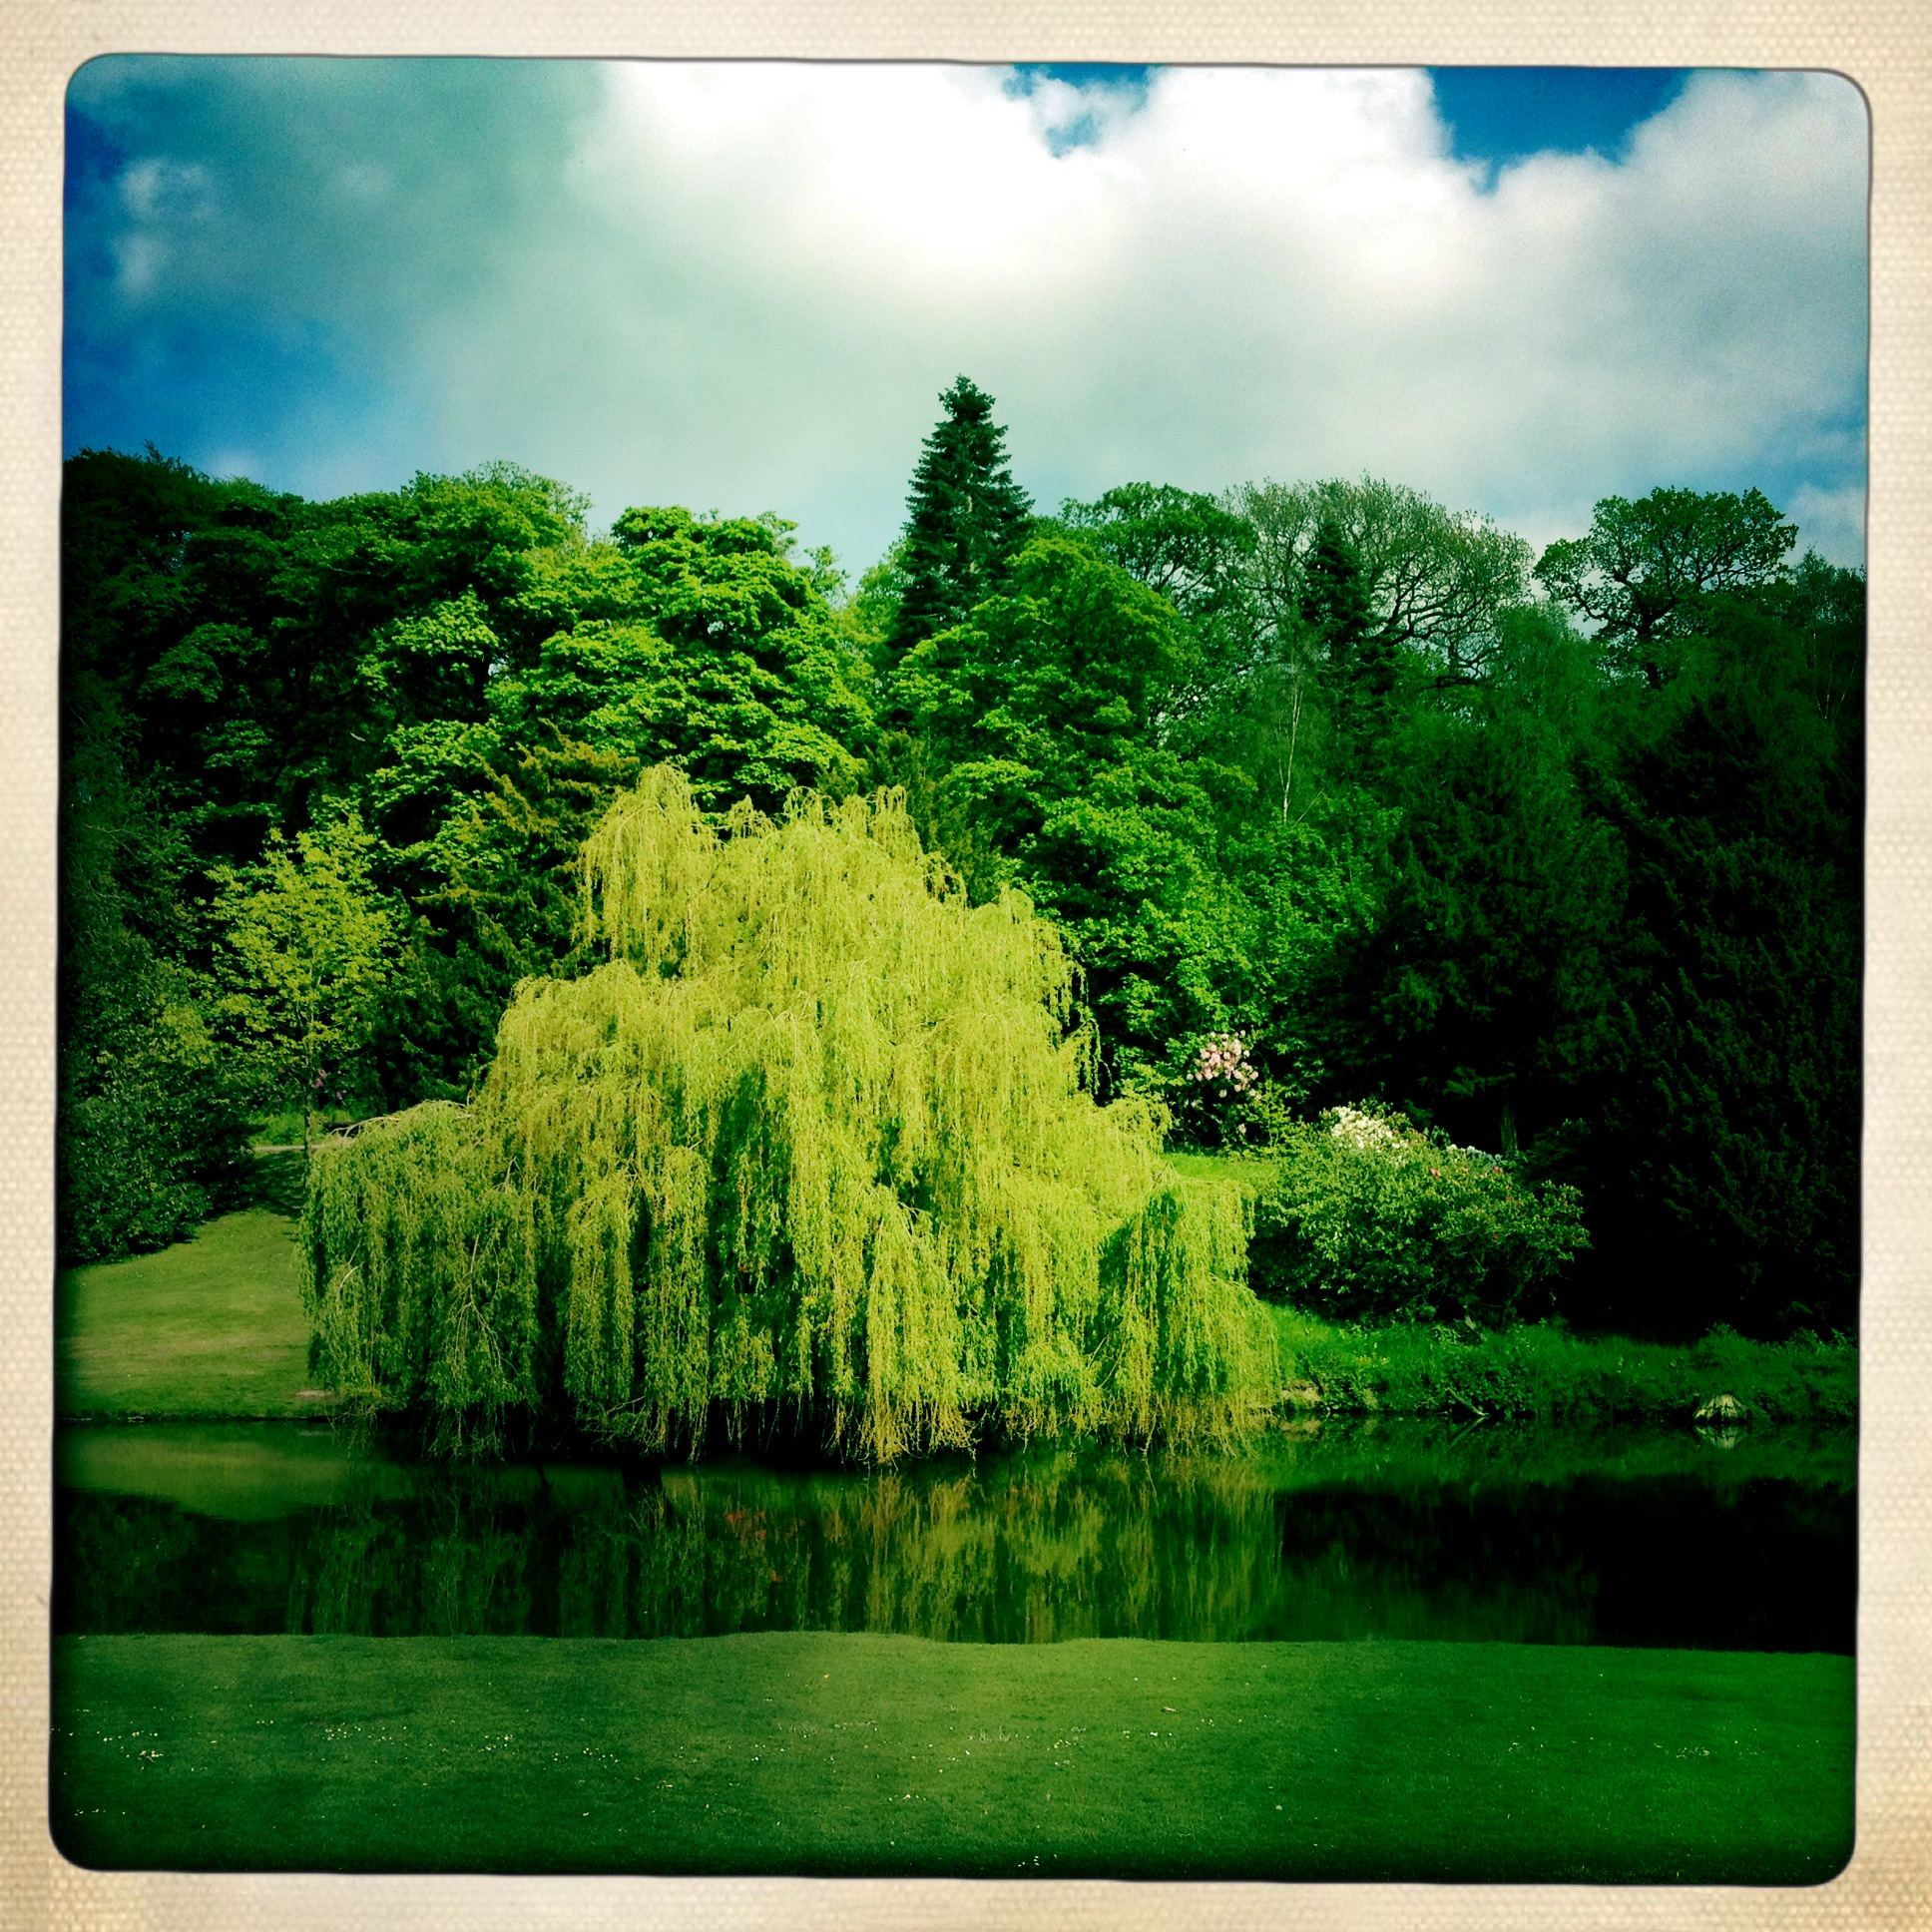 Weeping Willow - Temple Newsam